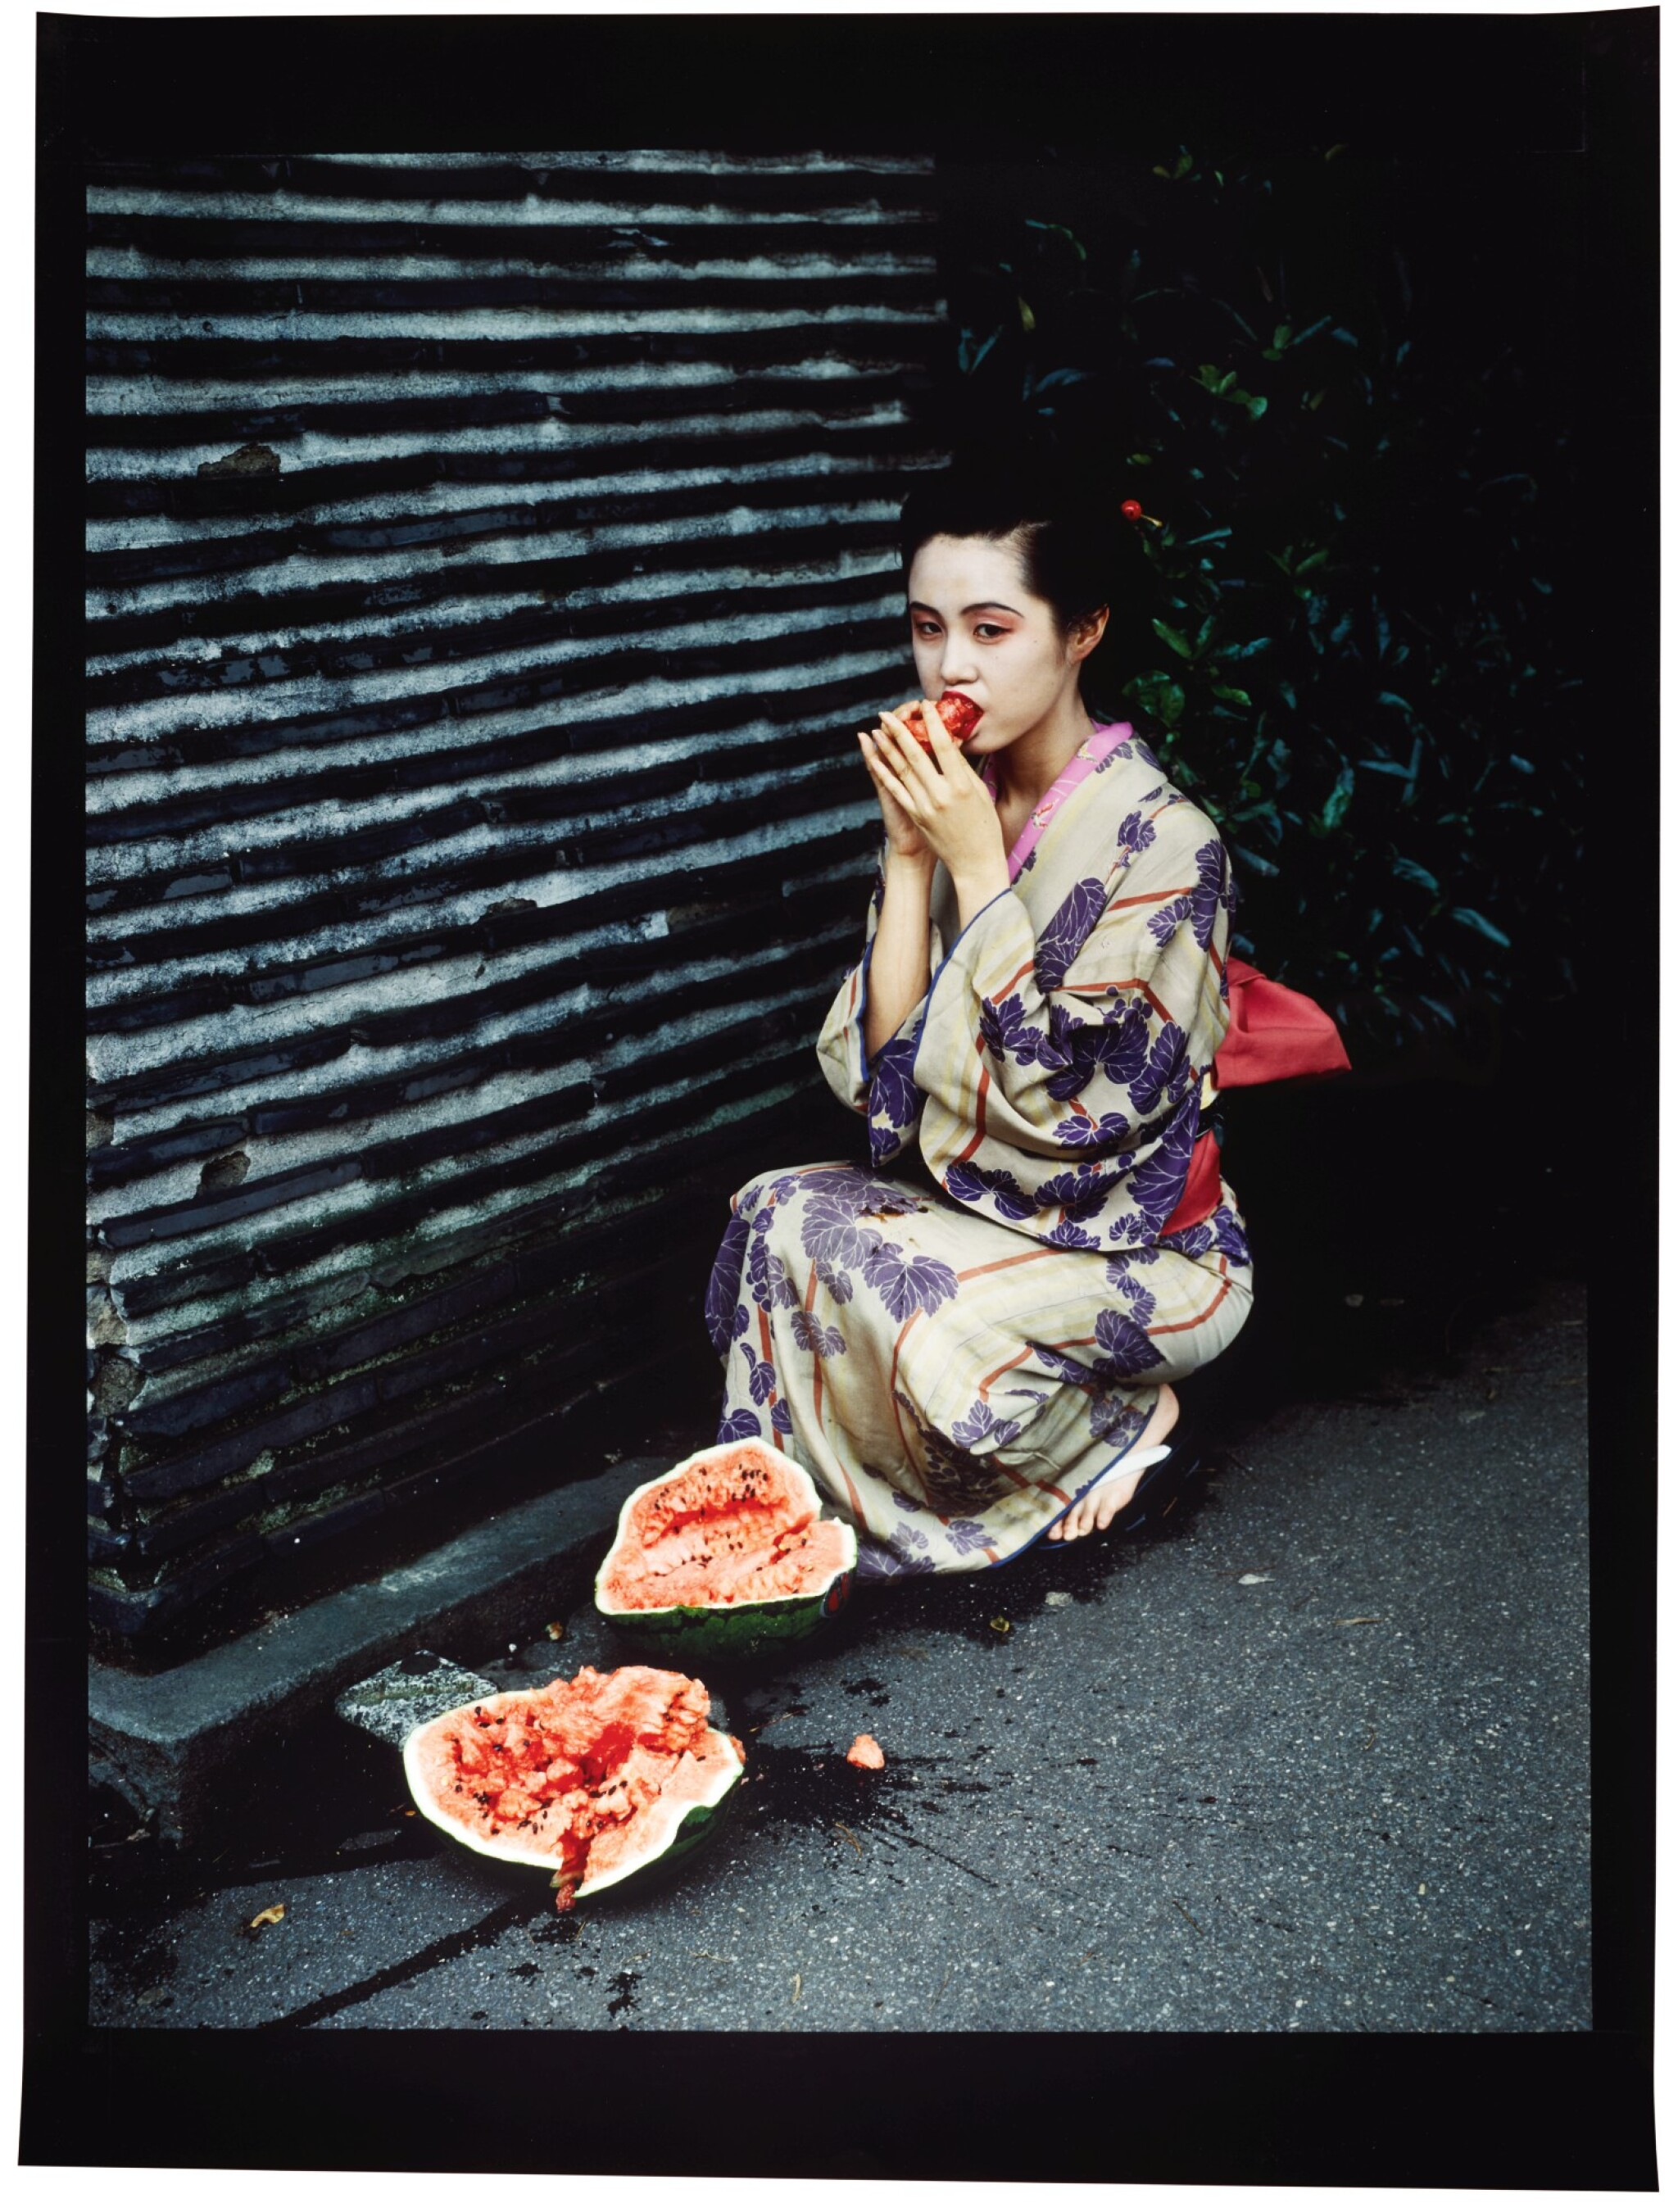 View full screen - View 1 of Lot 1. NOBUYOSHI ARAKI     UNTITLED (WATERMELON) (FROM THE SERIES COLOURSCAPES), 1991.